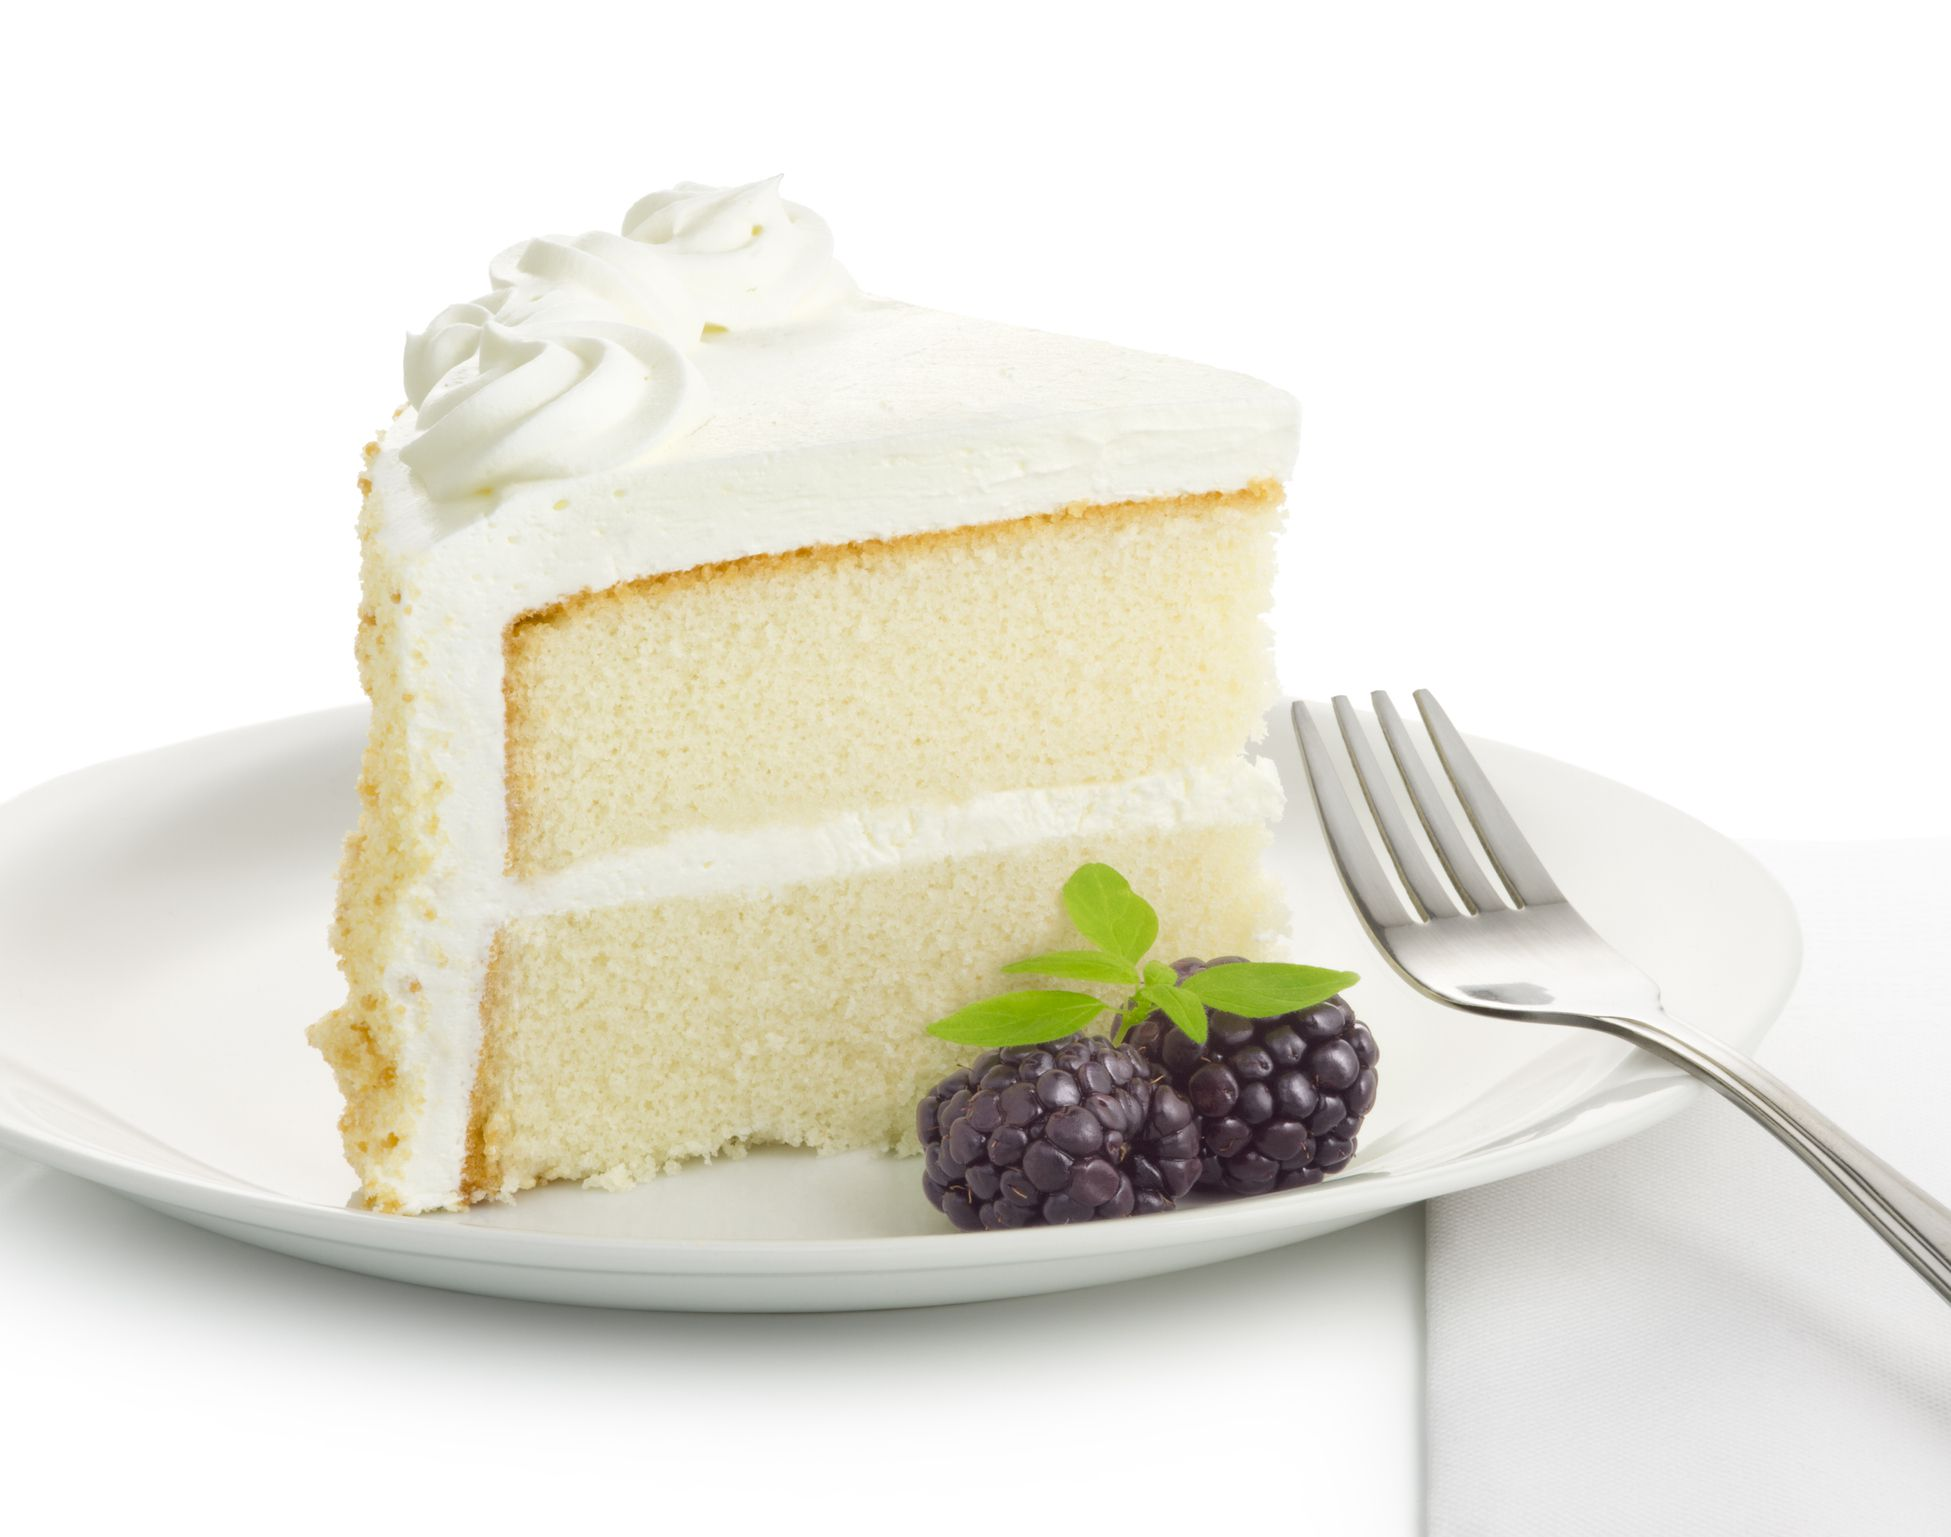 This Simple White Layer Cake Is Light, Fluffy, and Delicious